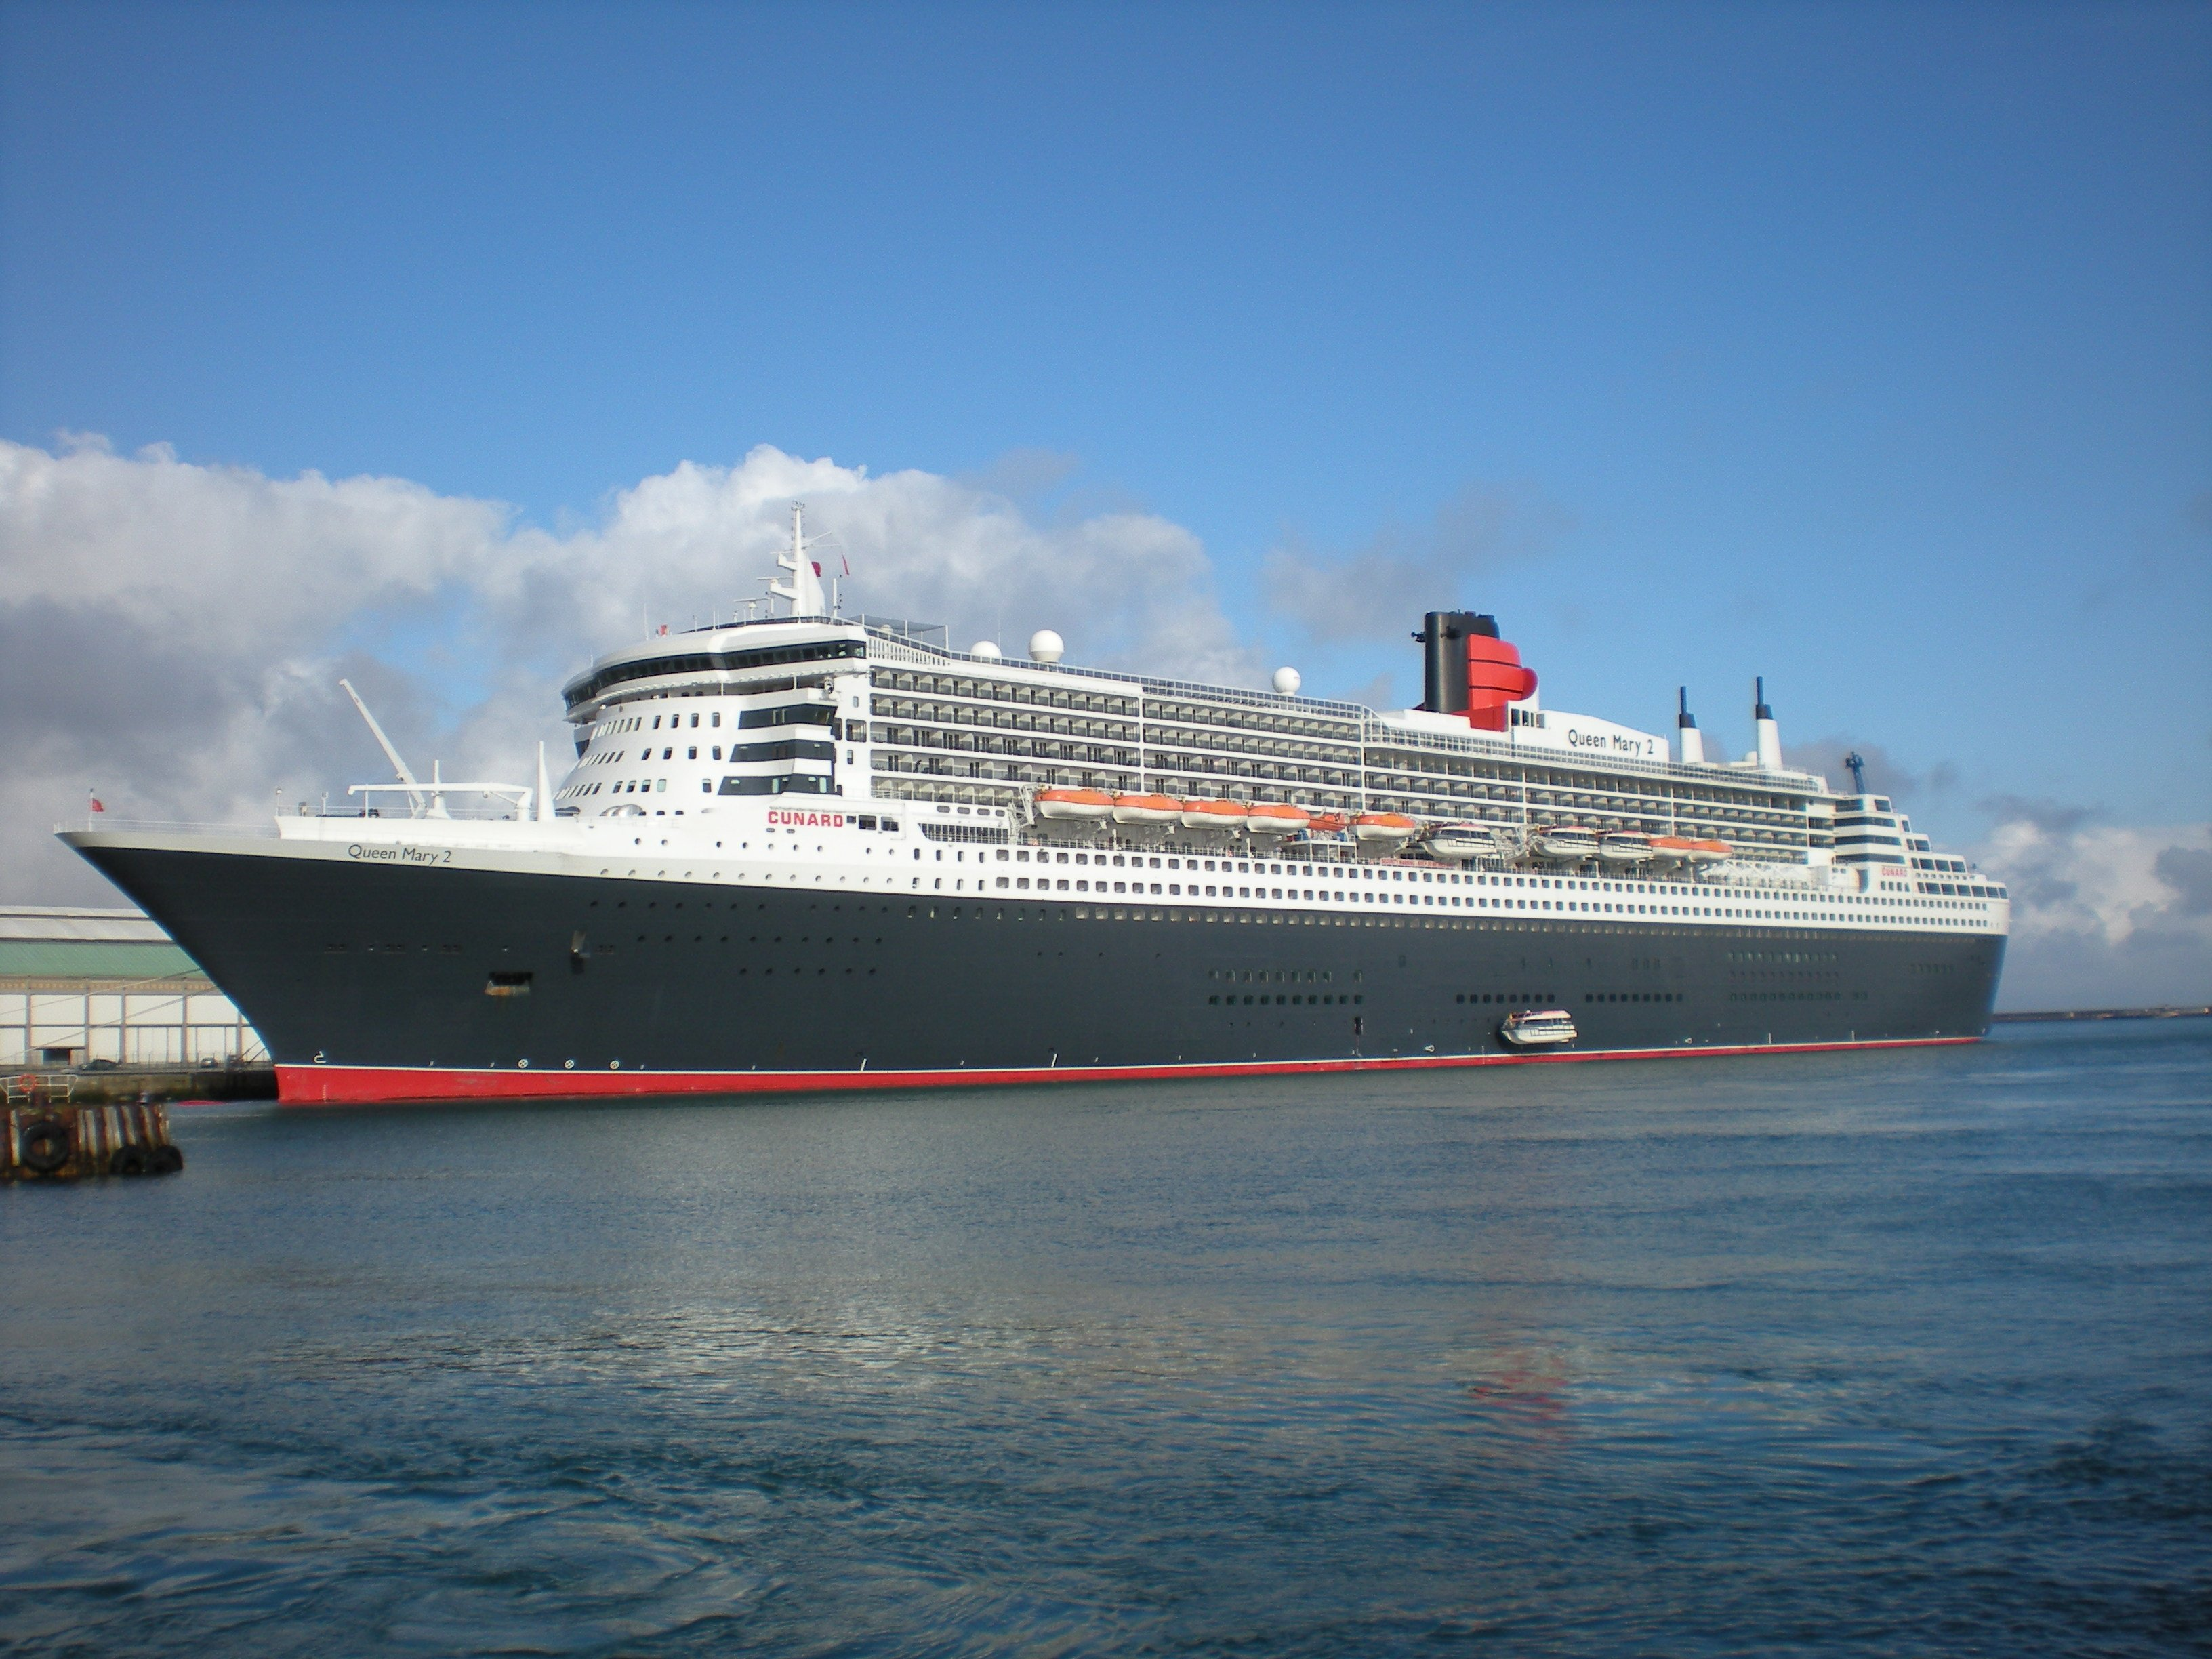 Queen mary 2 paquebots et car ferries cherbourg for Garderobe queen mary 2